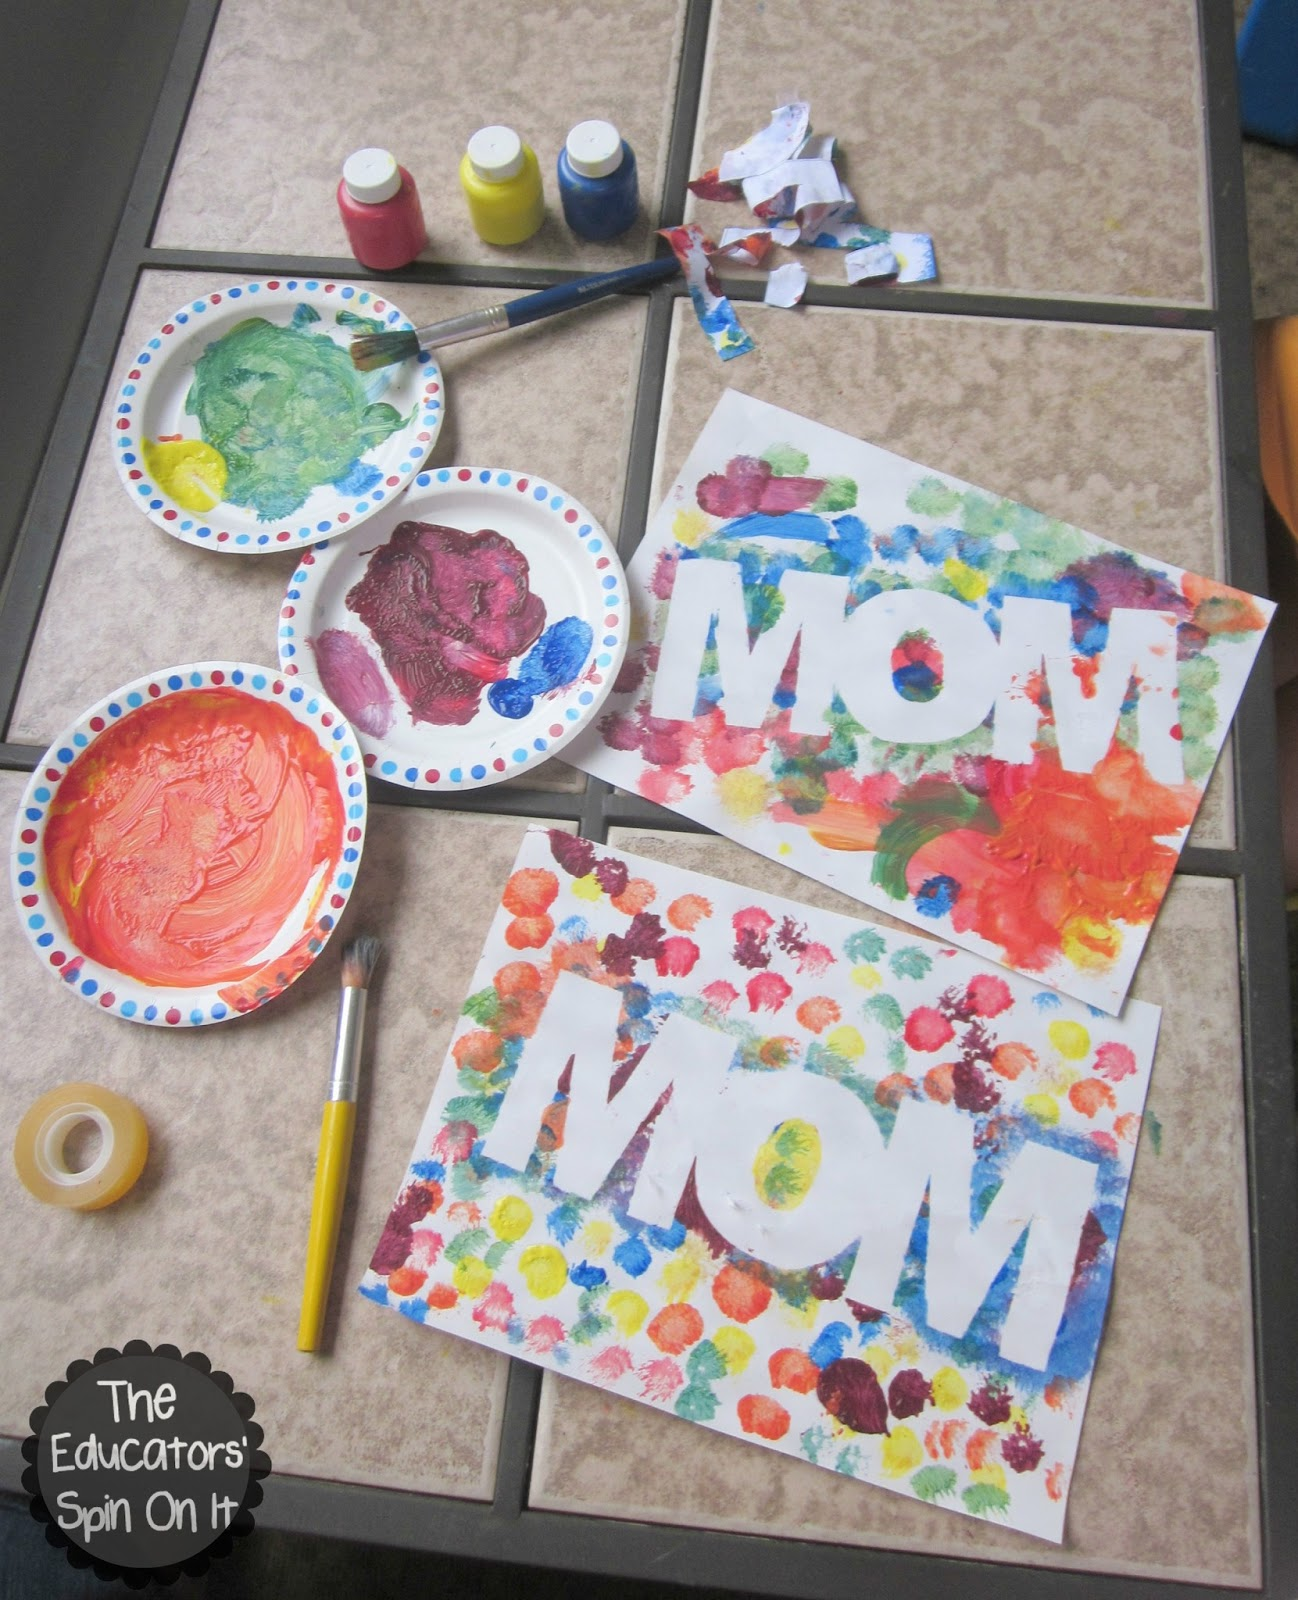 Pibterest Cast Ideas For Kids: The Educators' Spin On It: Easy Mother's Day Craft